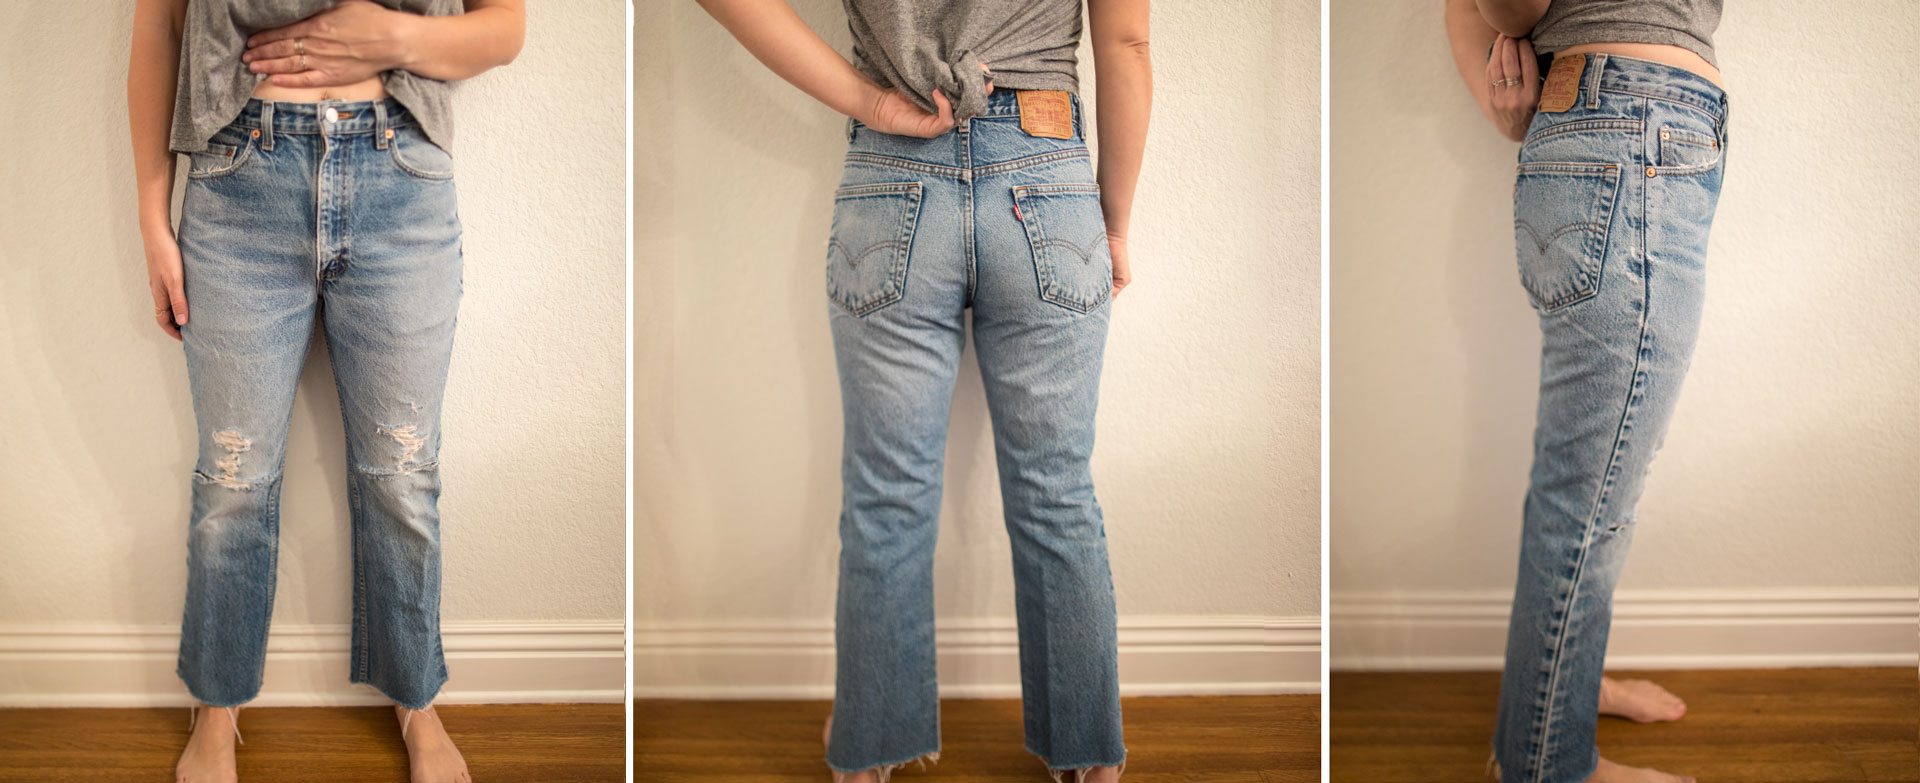 332e8b7e39 Finding the Right Jeans | Vintage Levi's Fit Guide - This Mom's ...